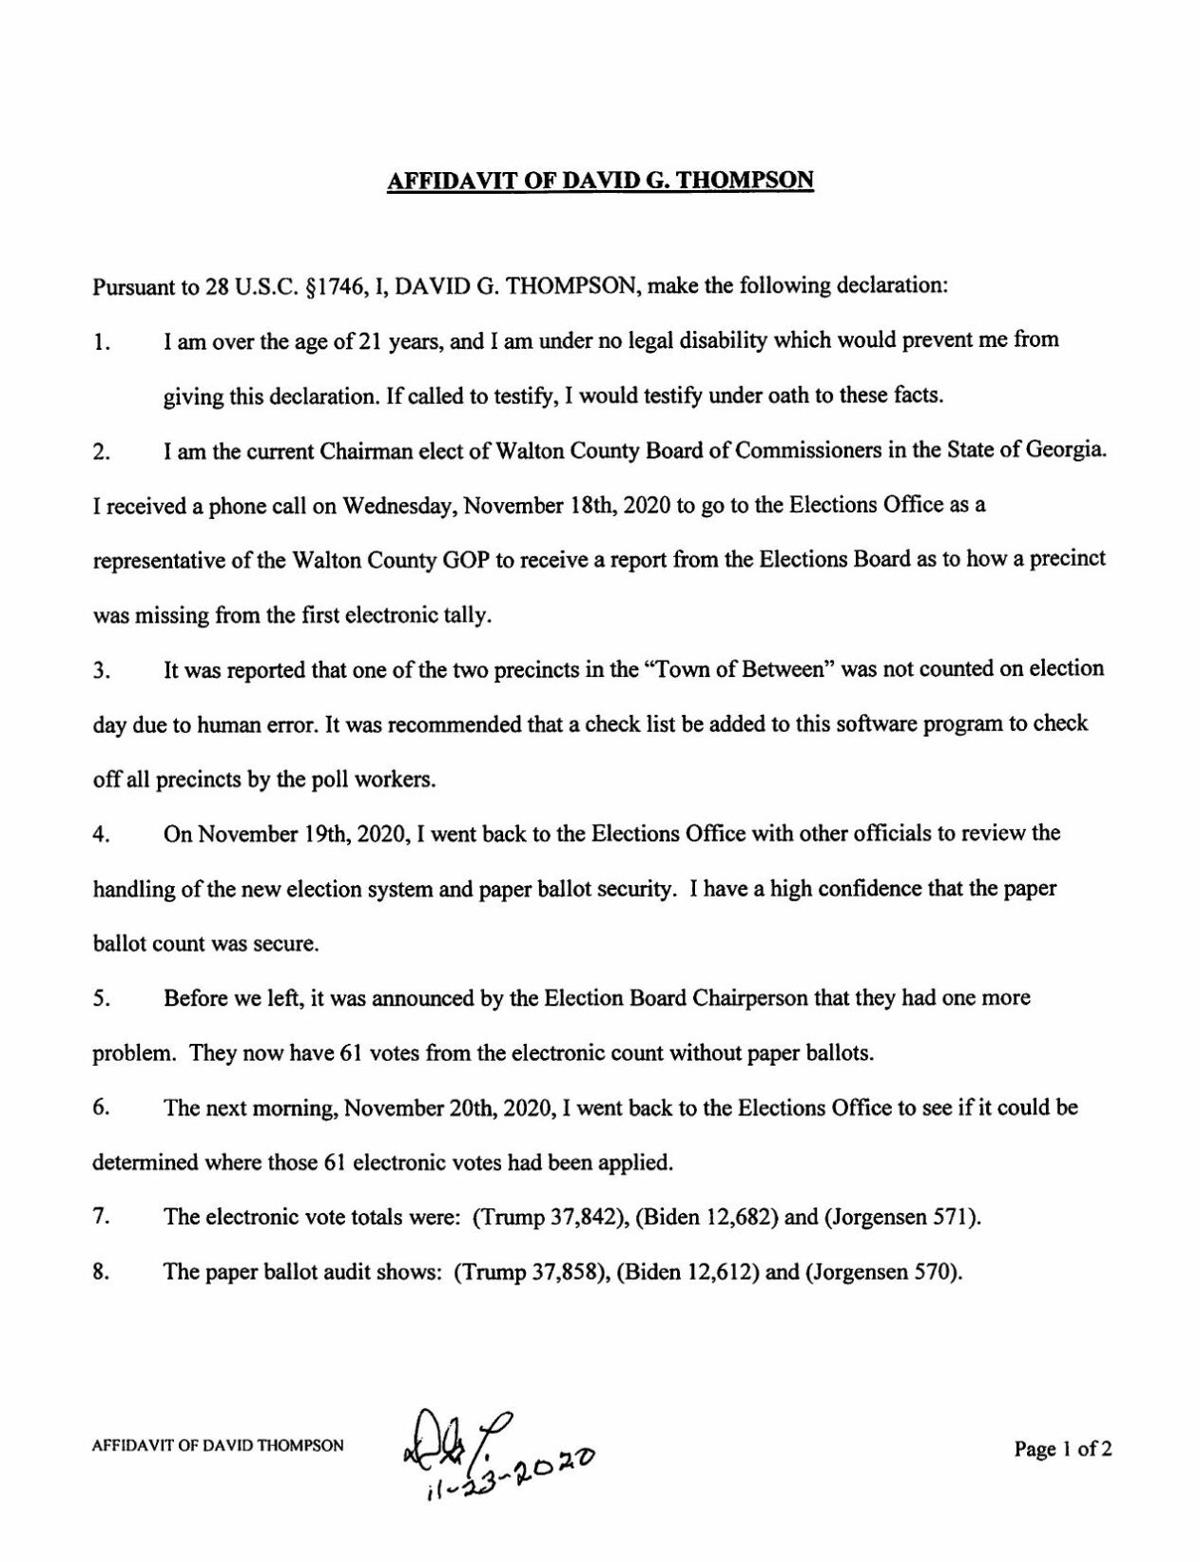 David Thompson Affidavit Nov. 23, 2020